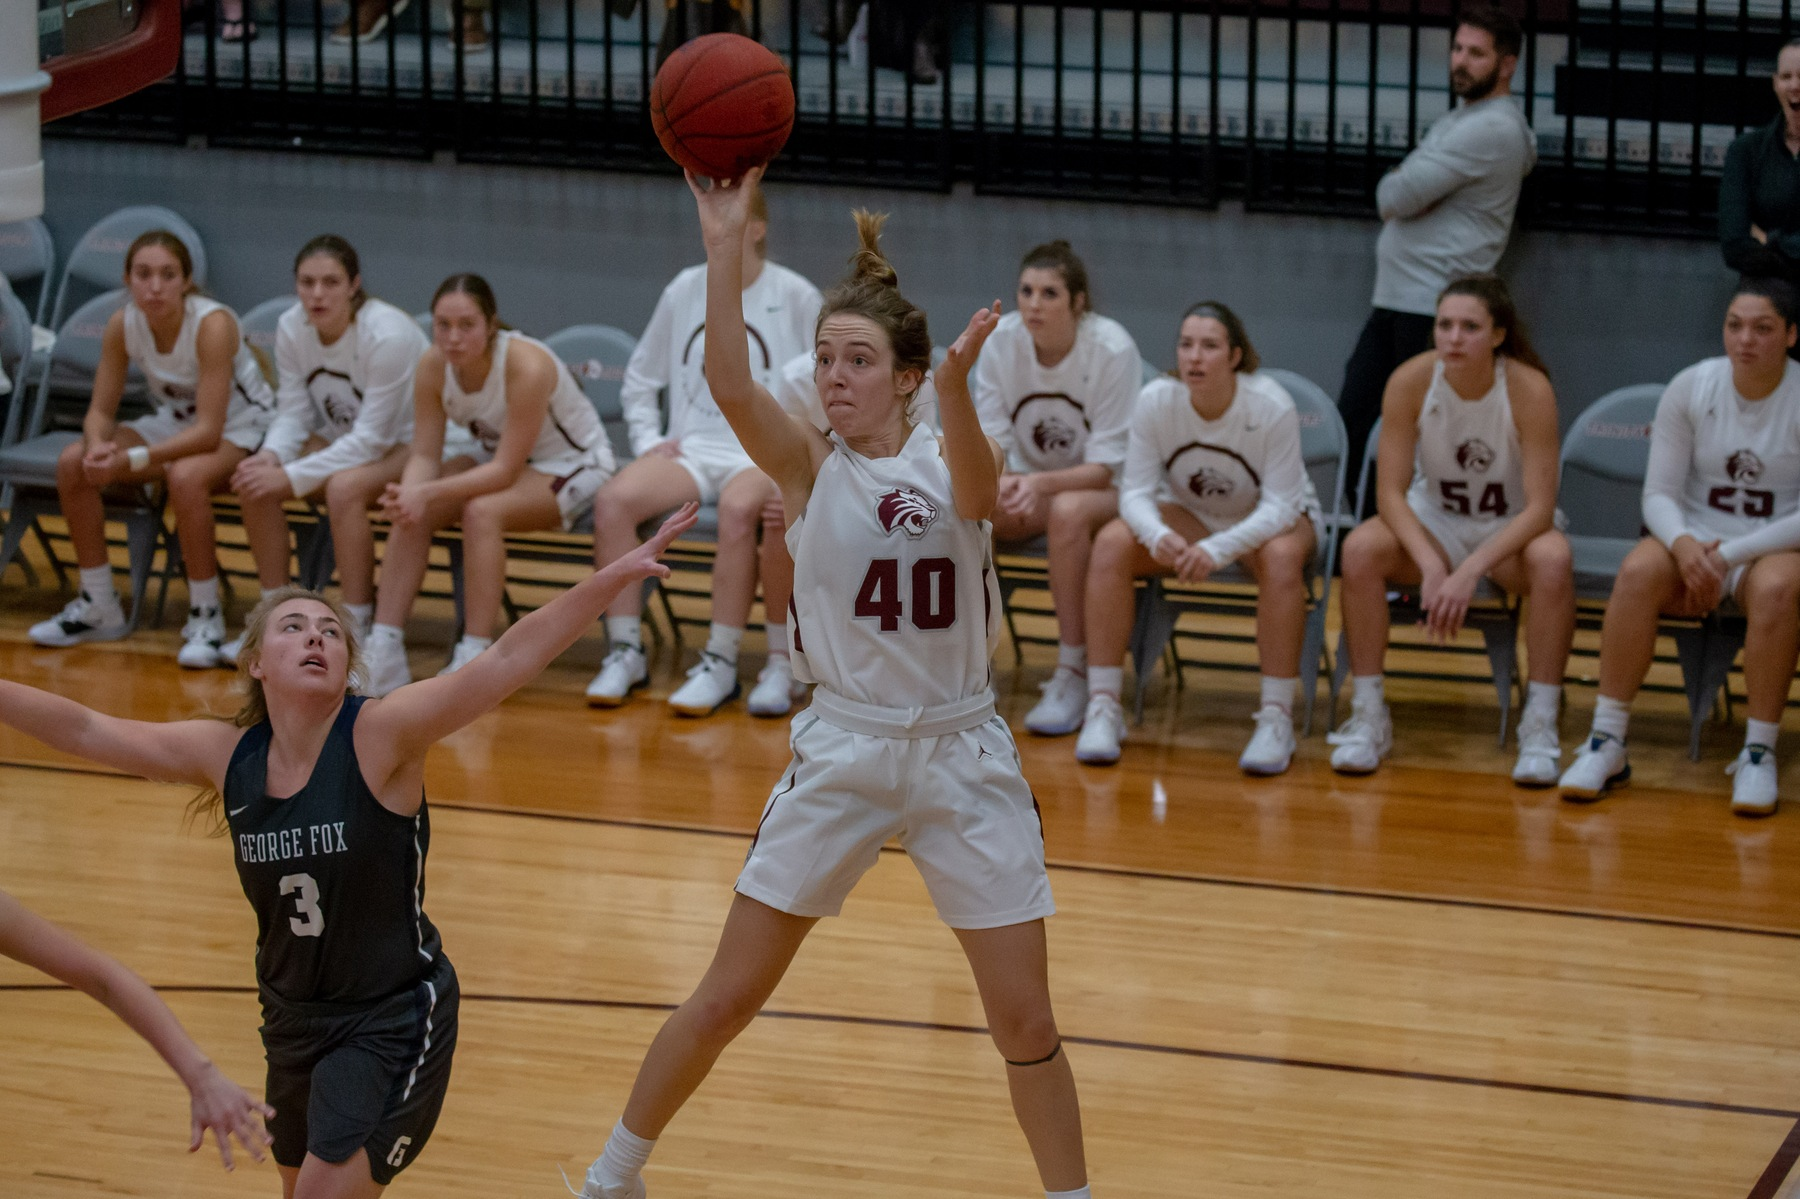 Women's Basketball Opens 2019-20 With Win Over #8 George Fox